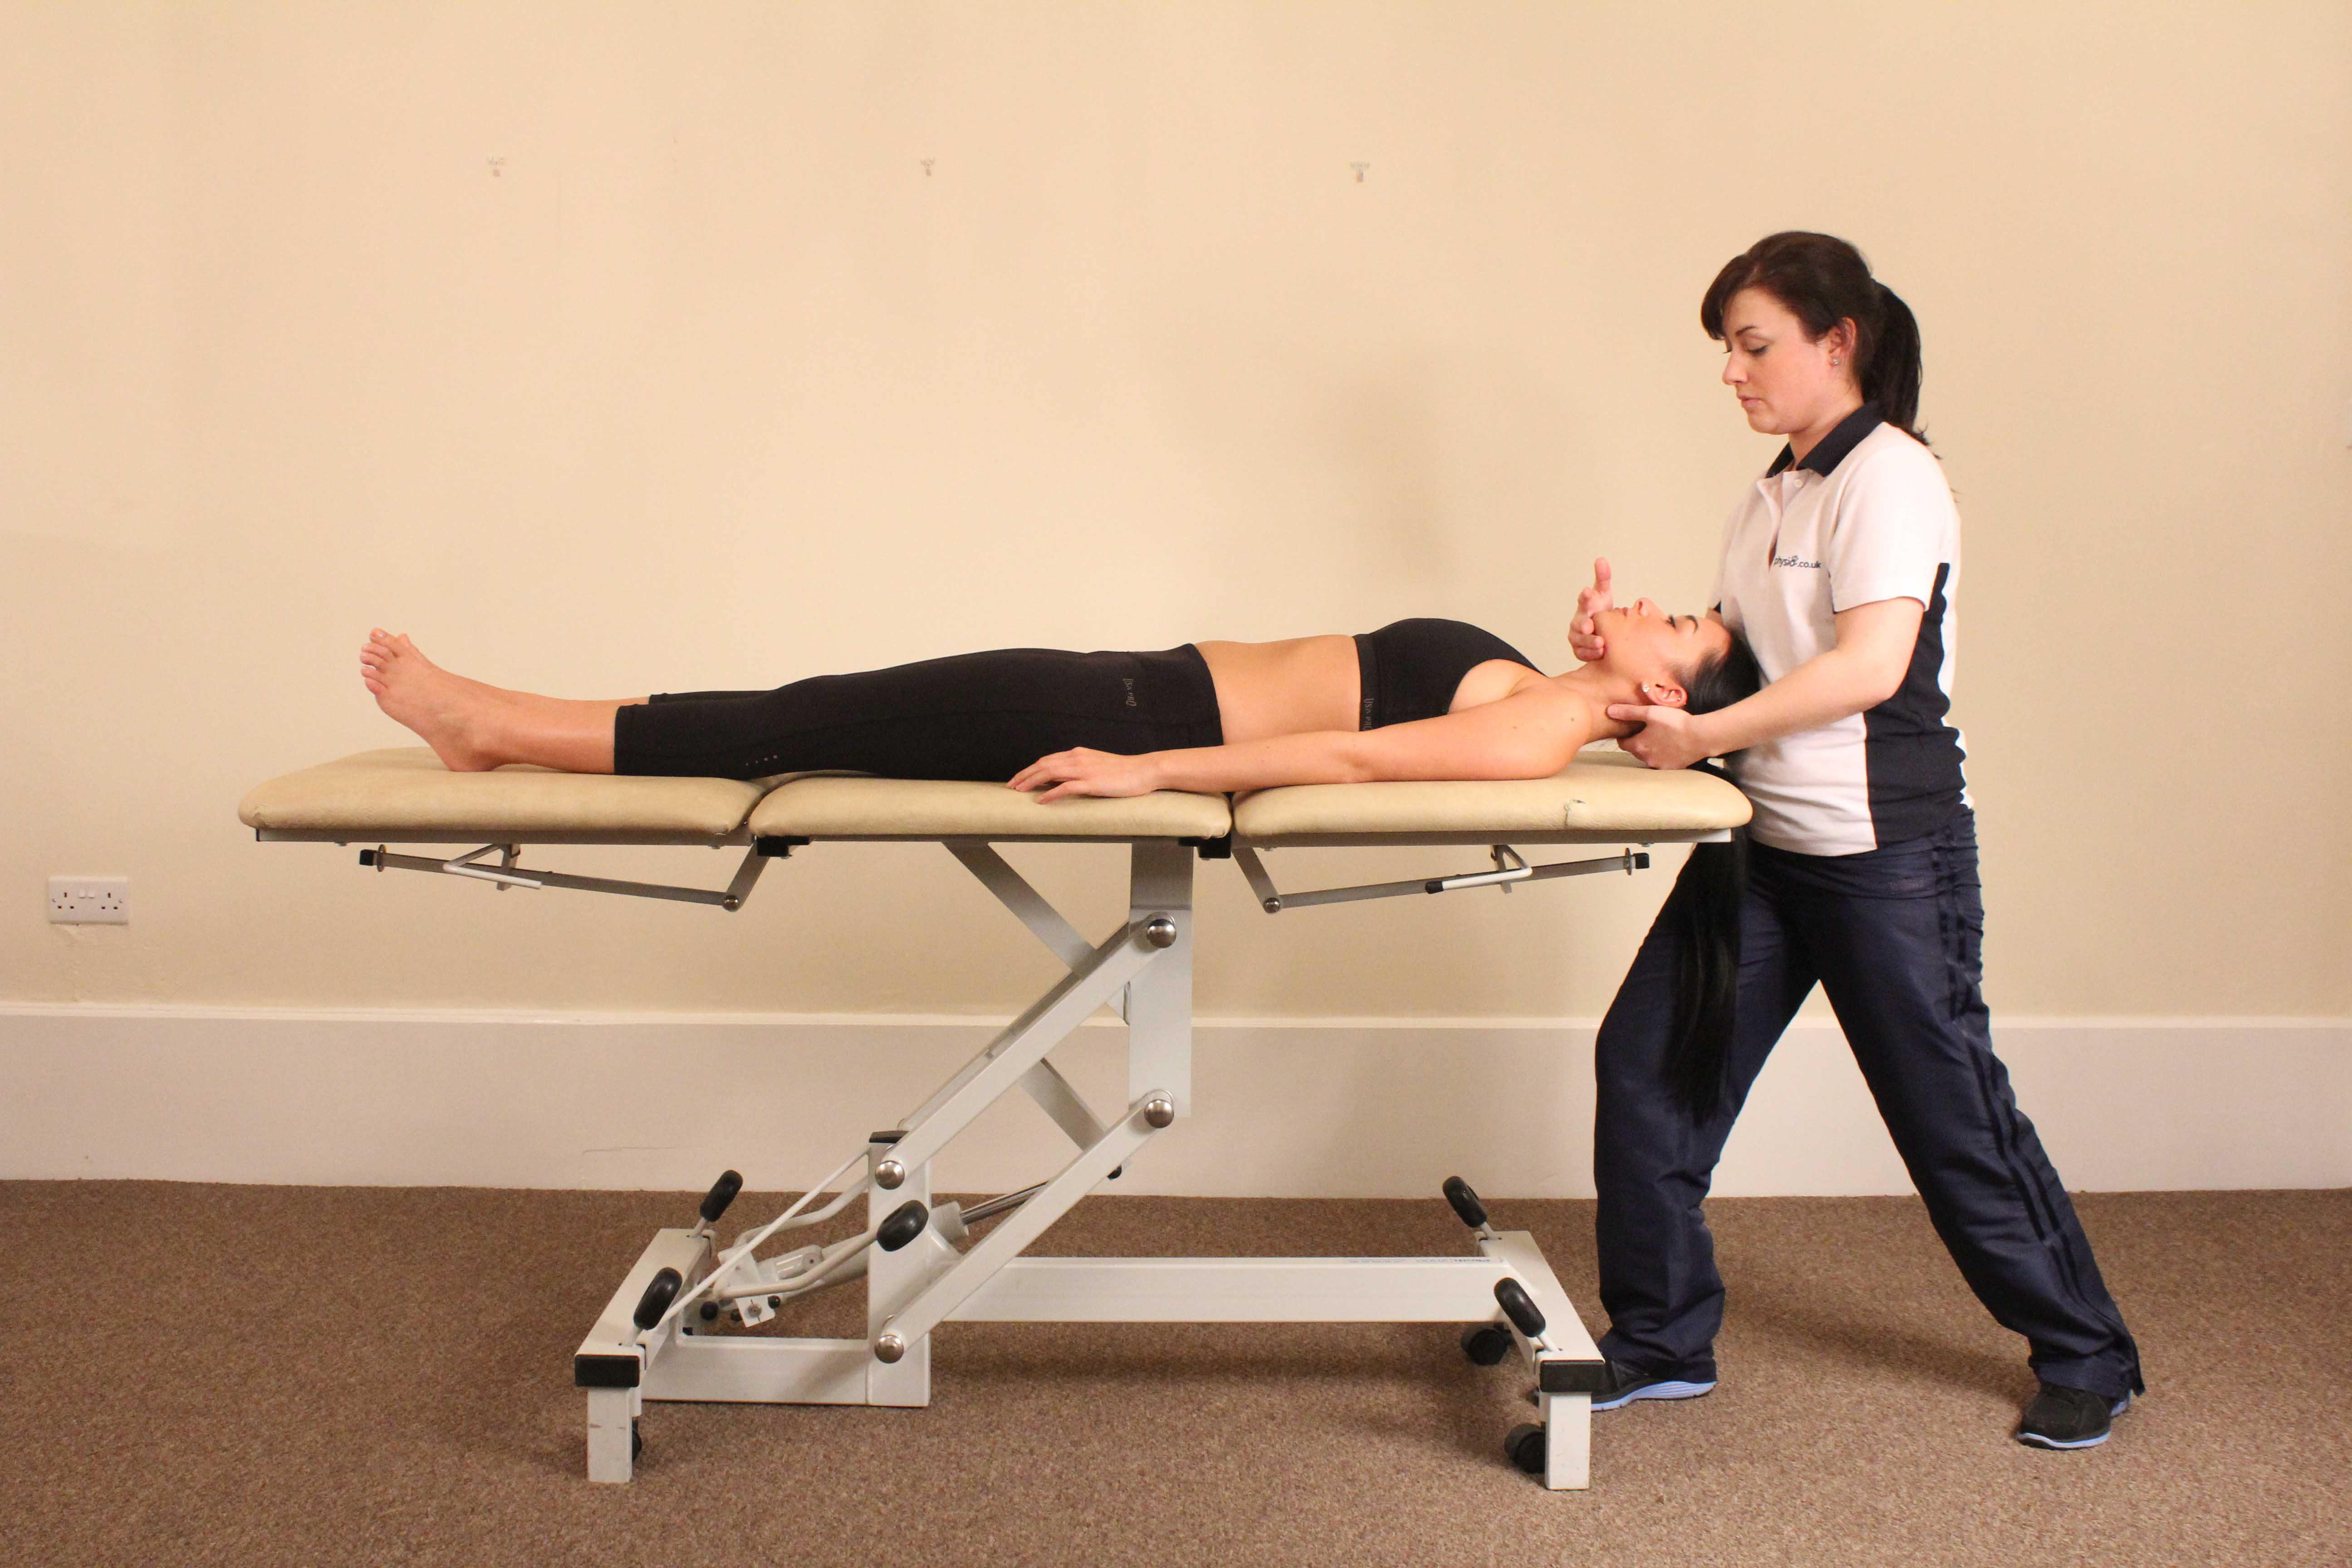 Passive stretches and mobilisations of the cervical spine and muscles of the neck to relieve pain and stiffness